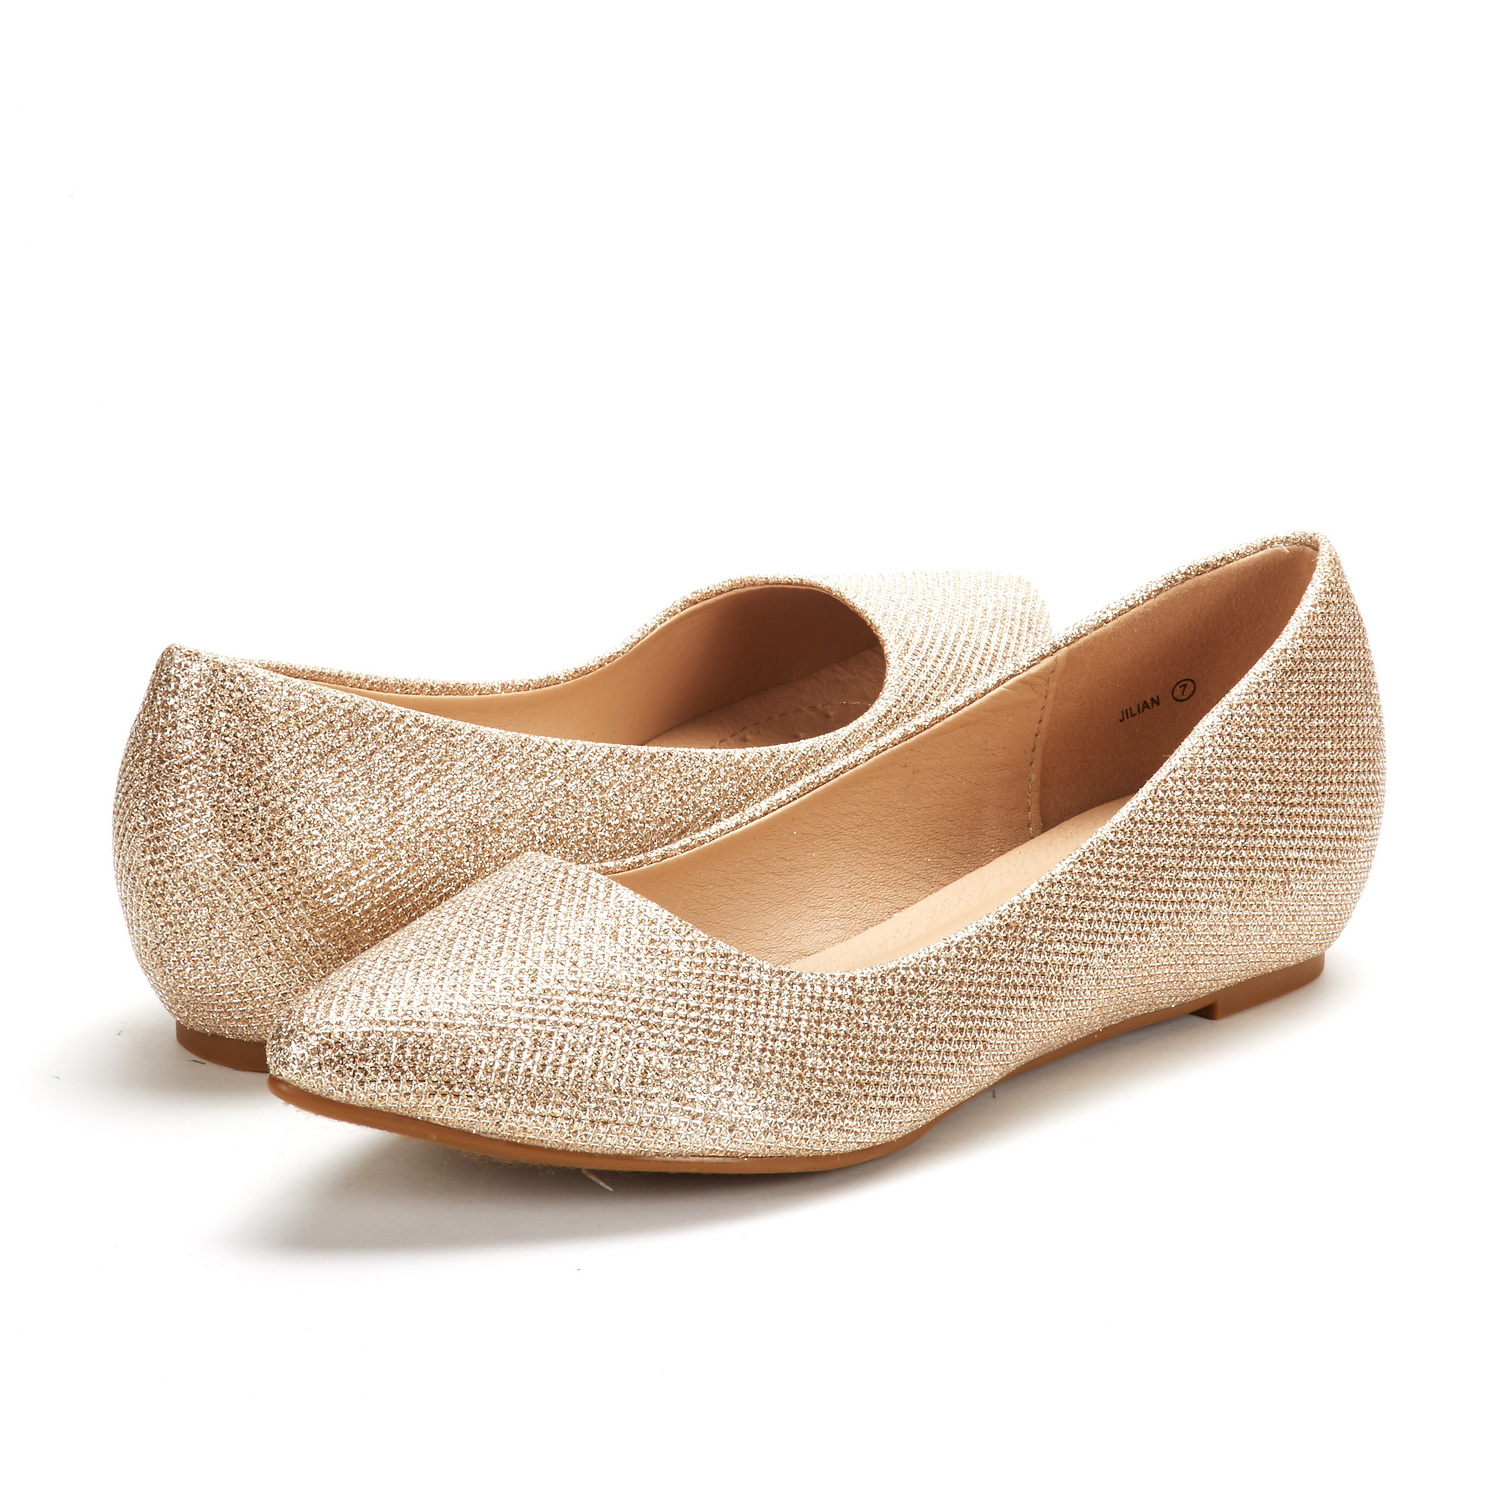 DREAM-PAIRS-Women-Low-Wedge-Flats-Ladies-Pointed-Toe-Slip-On-Comfort-Flat-Shoes thumbnail 27